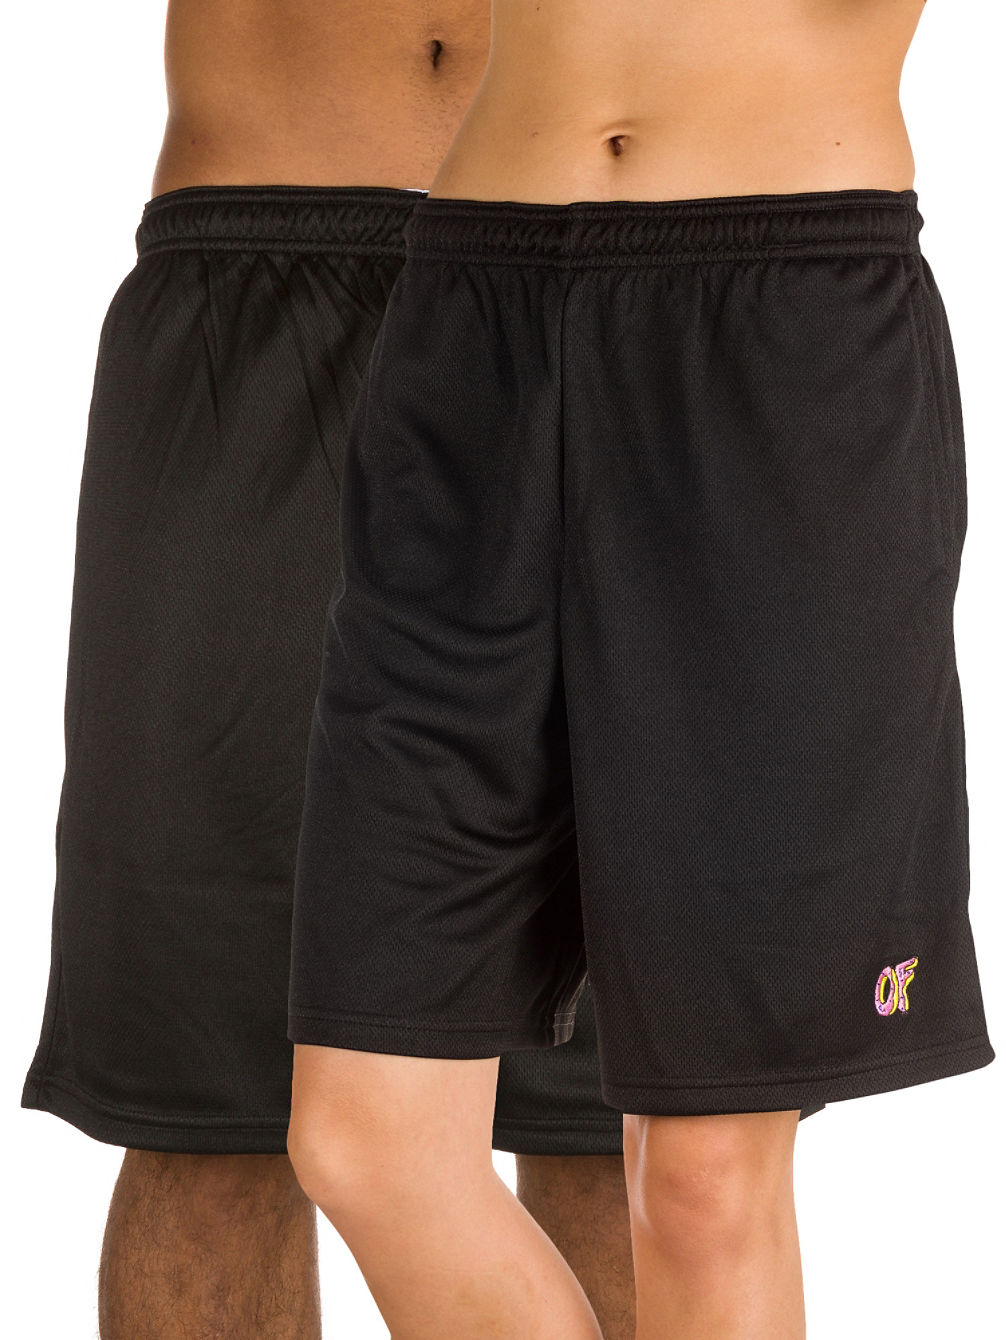 OF Logo Mesh Shorts